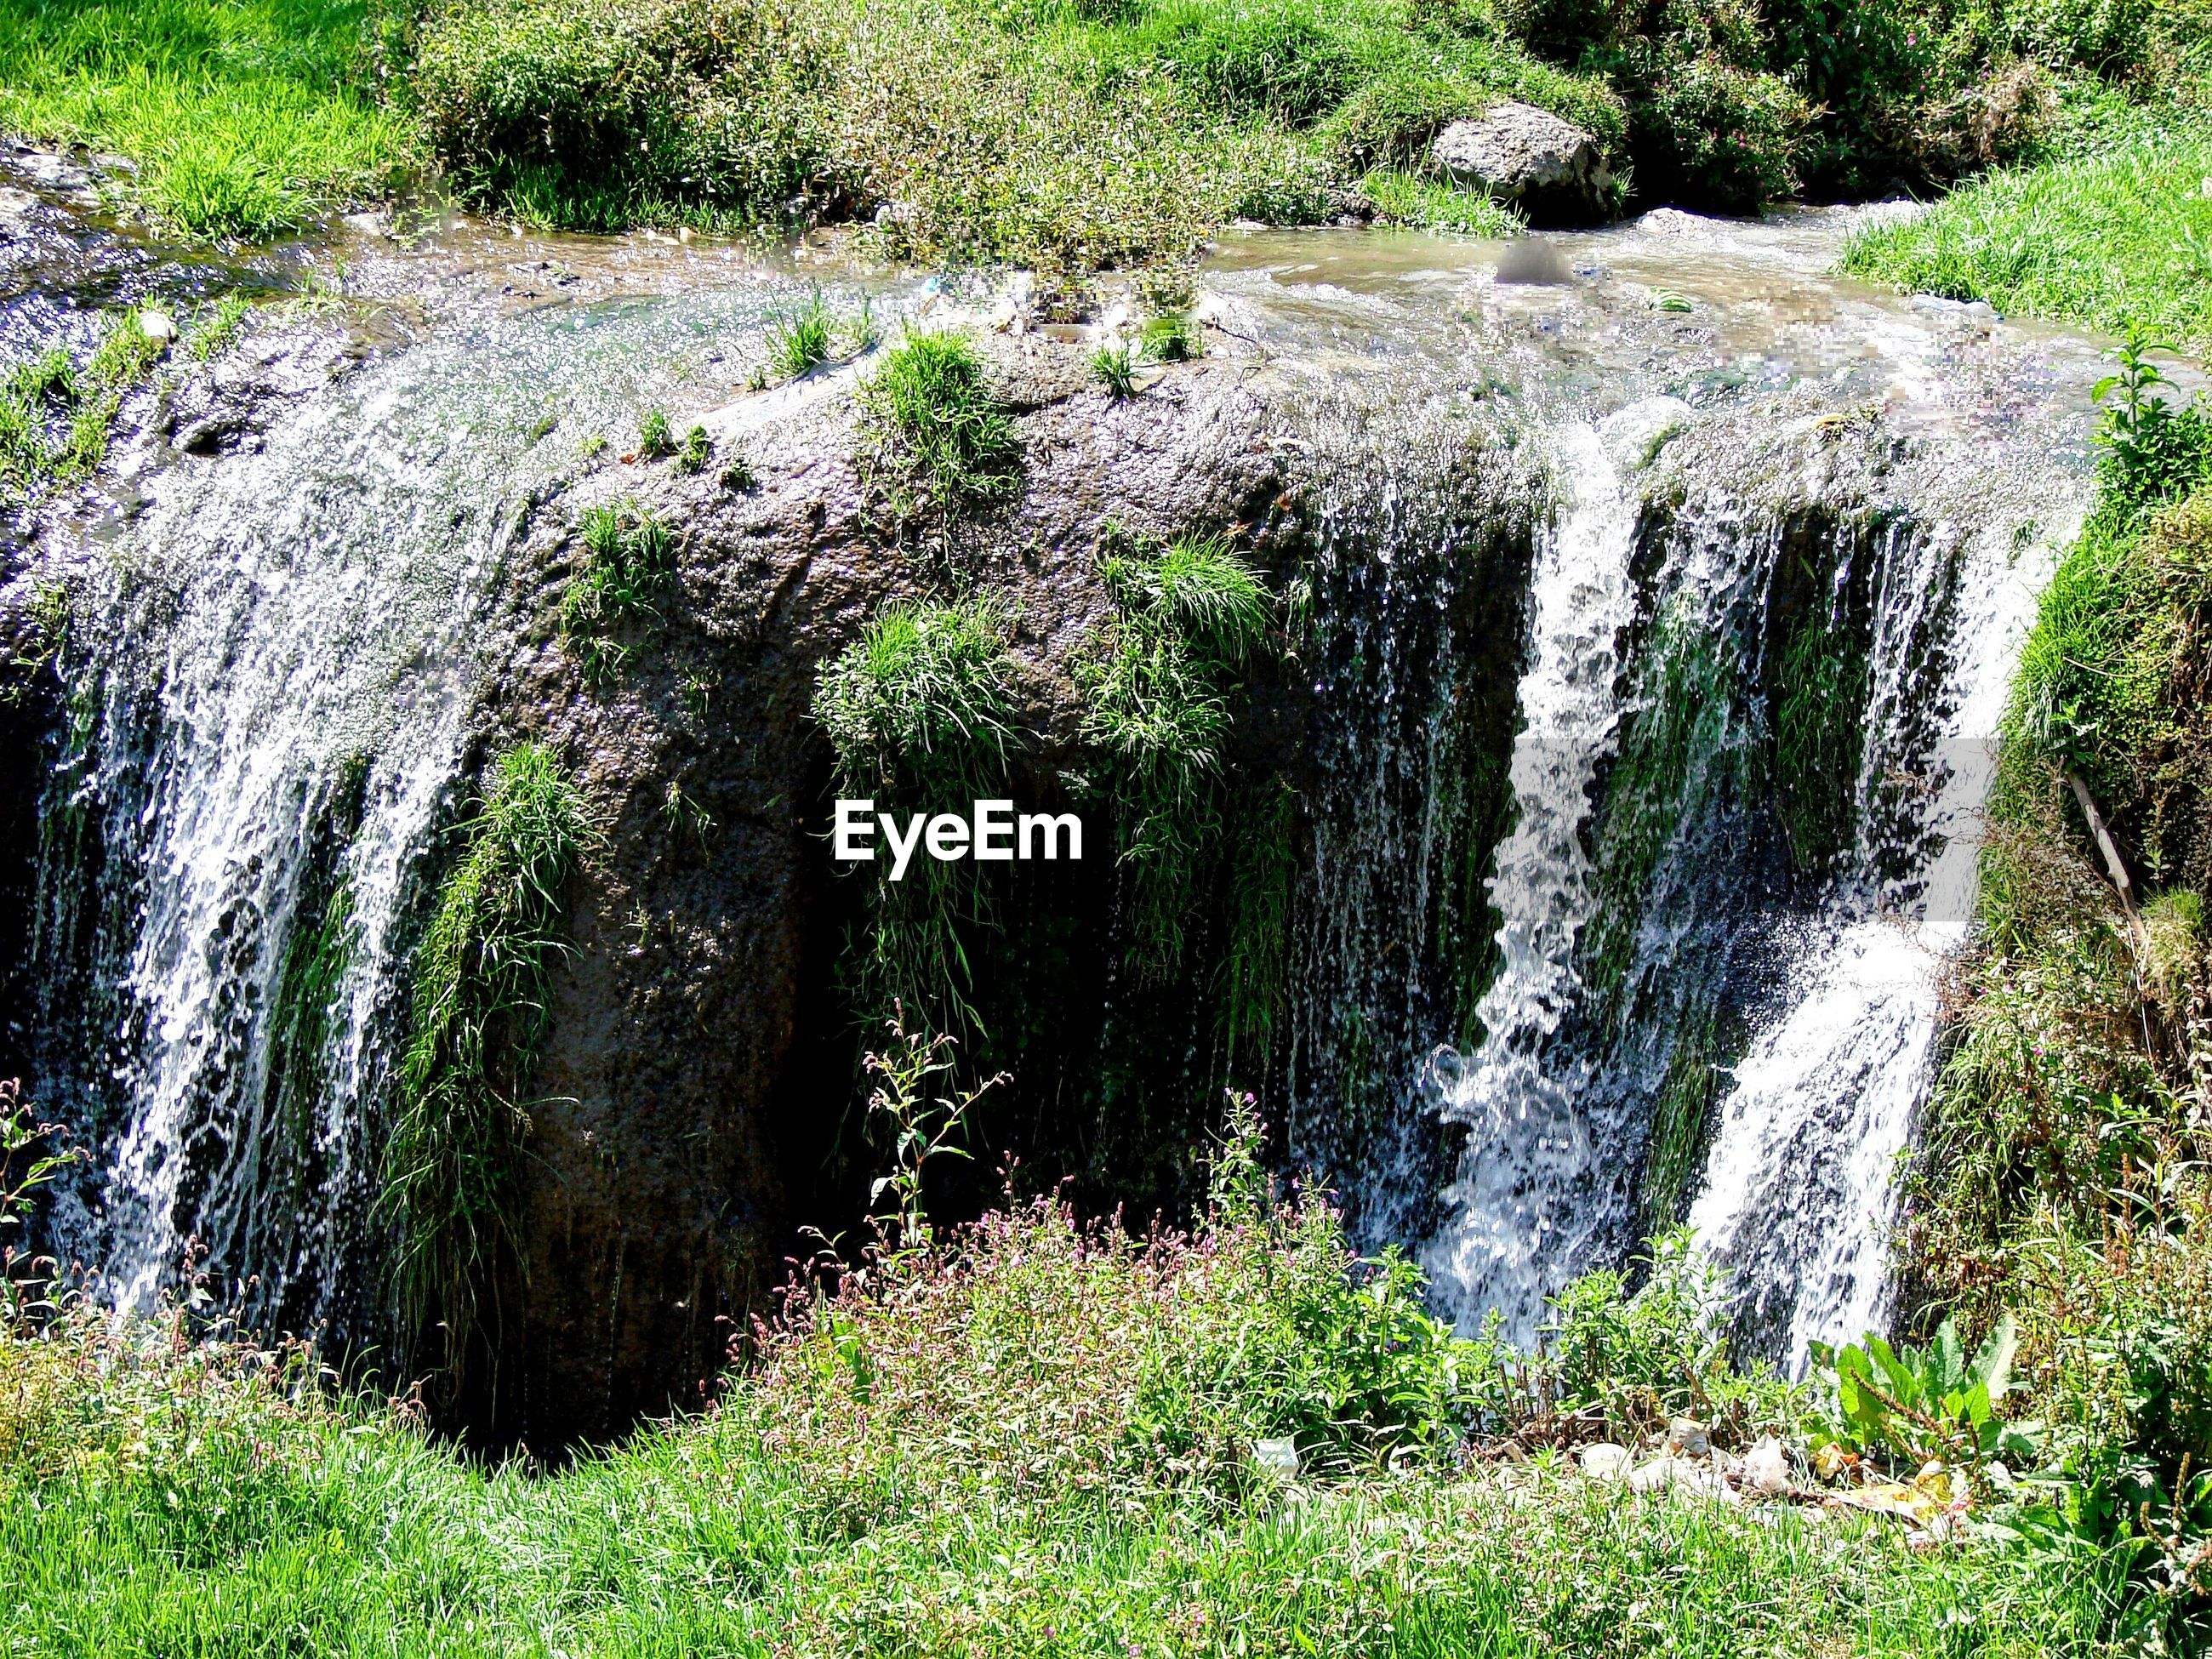 grass, green color, waterfall, nature, beauty in nature, growth, plant, scenics, flowing water, rock - object, moss, tranquility, flowing, motion, water, tranquil scene, day, tree, forest, outdoors